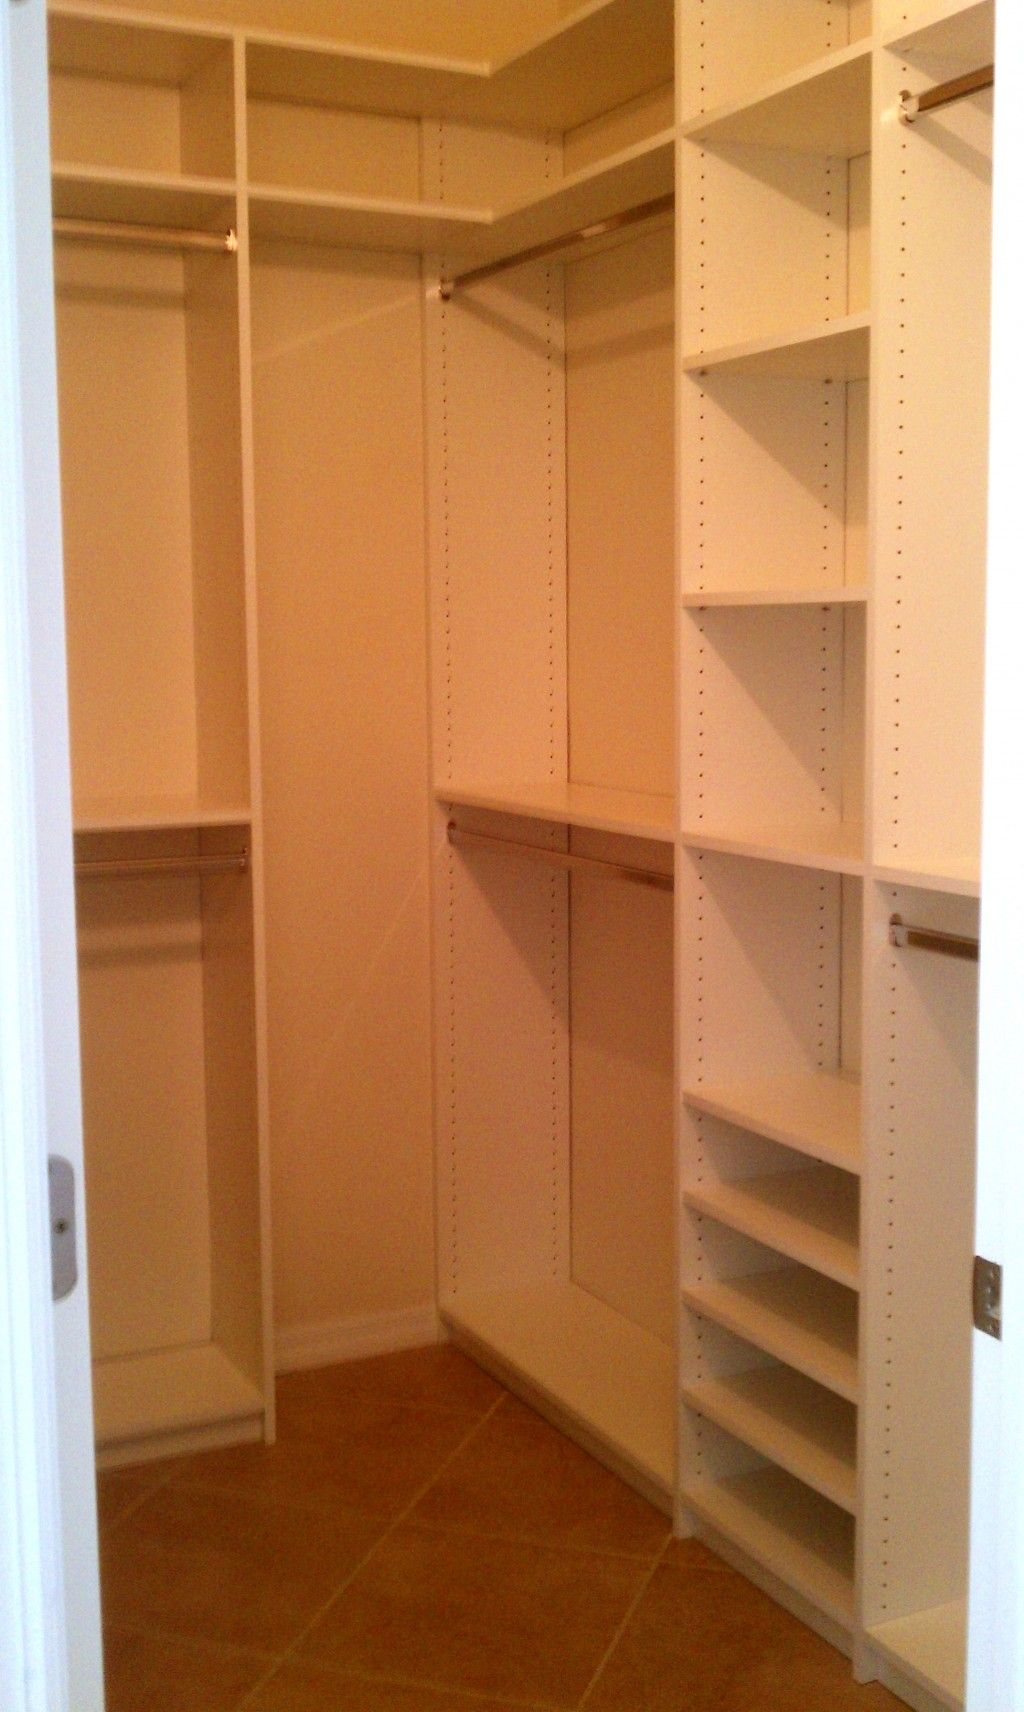 Walk In Closet Plans Diy With Master Bath With Walk In Closet Floor Plans Organizing Walk In Closet Bedroom Organization Closet Closet Planning